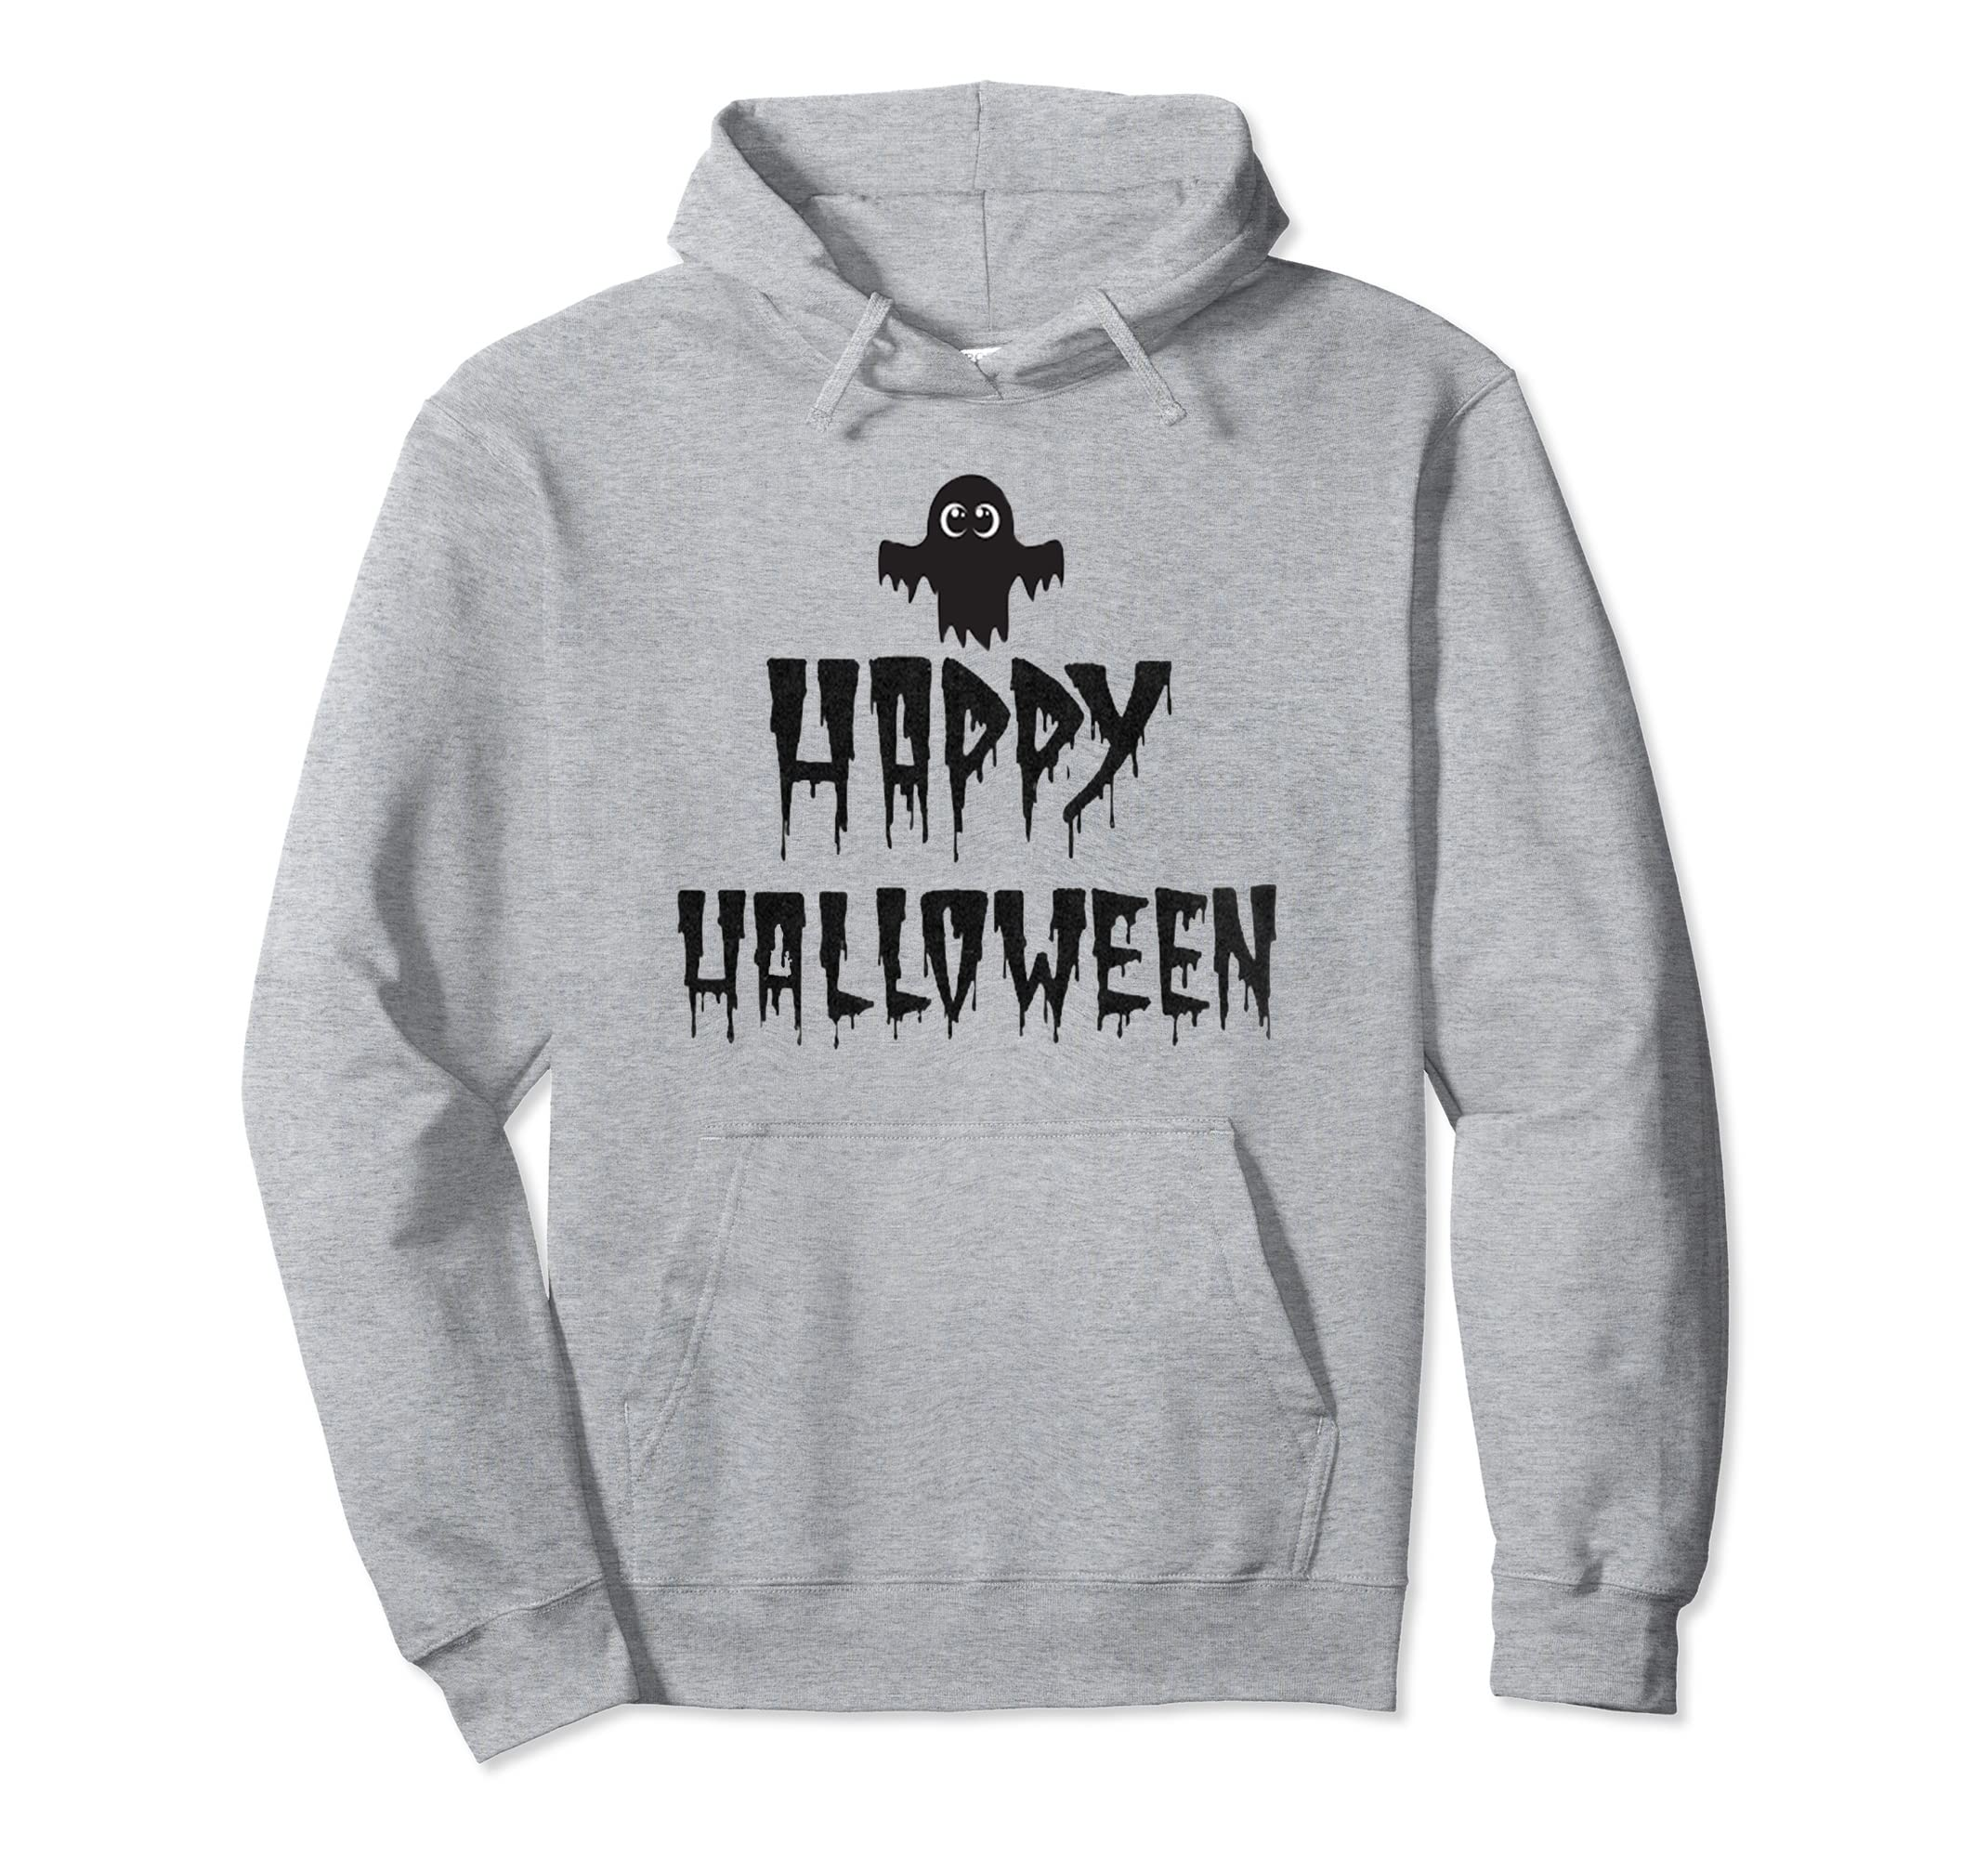 women, men , Halloween hoodies , comfiy top,-ANZ